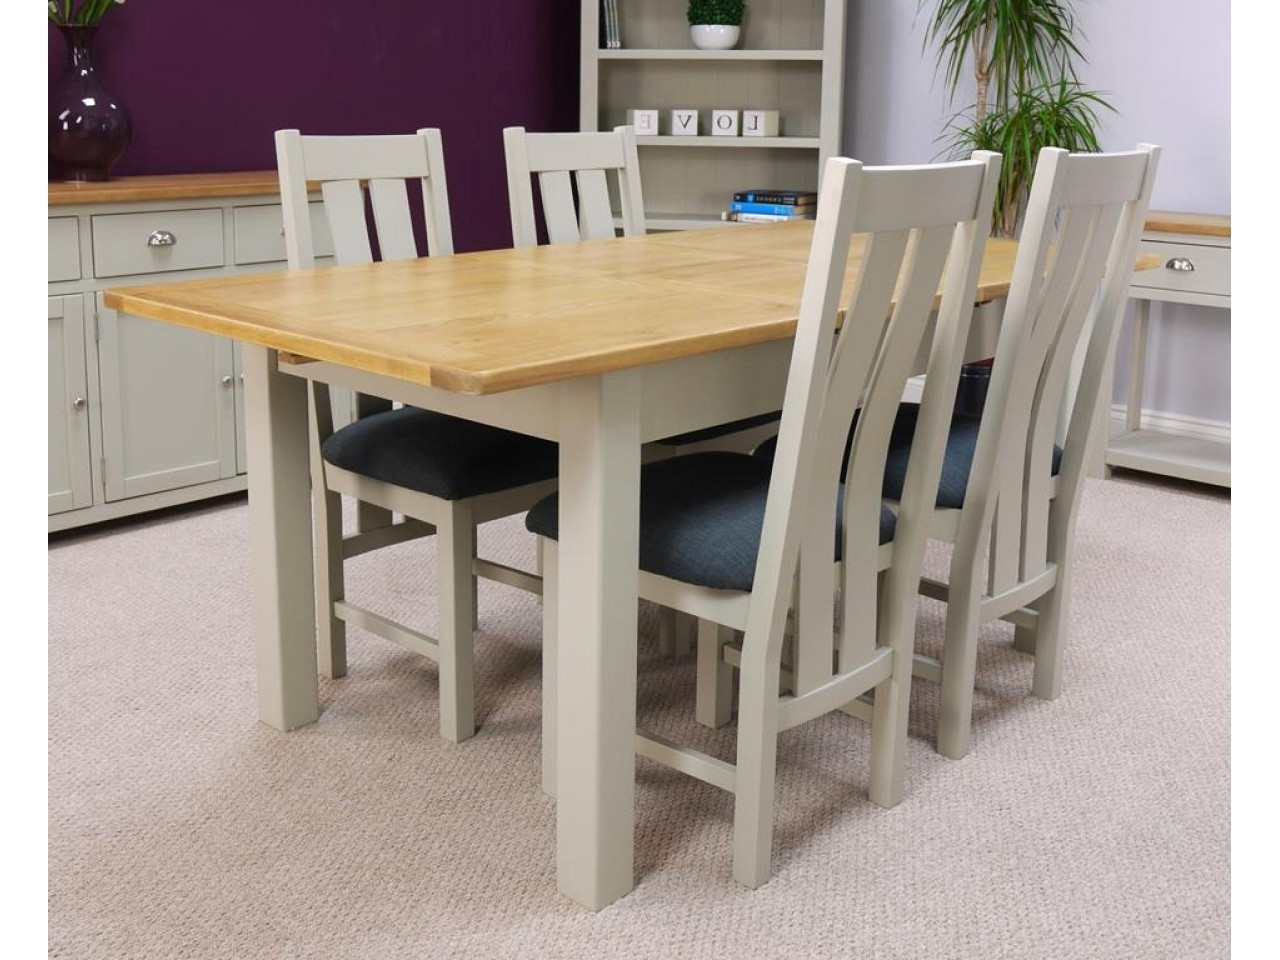 Extendable Oak Dining Tables And Chairs Throughout 2017 Oak Living Room Furniture Uk With Two Tone Grey Painted Extending (View 20 of 25)